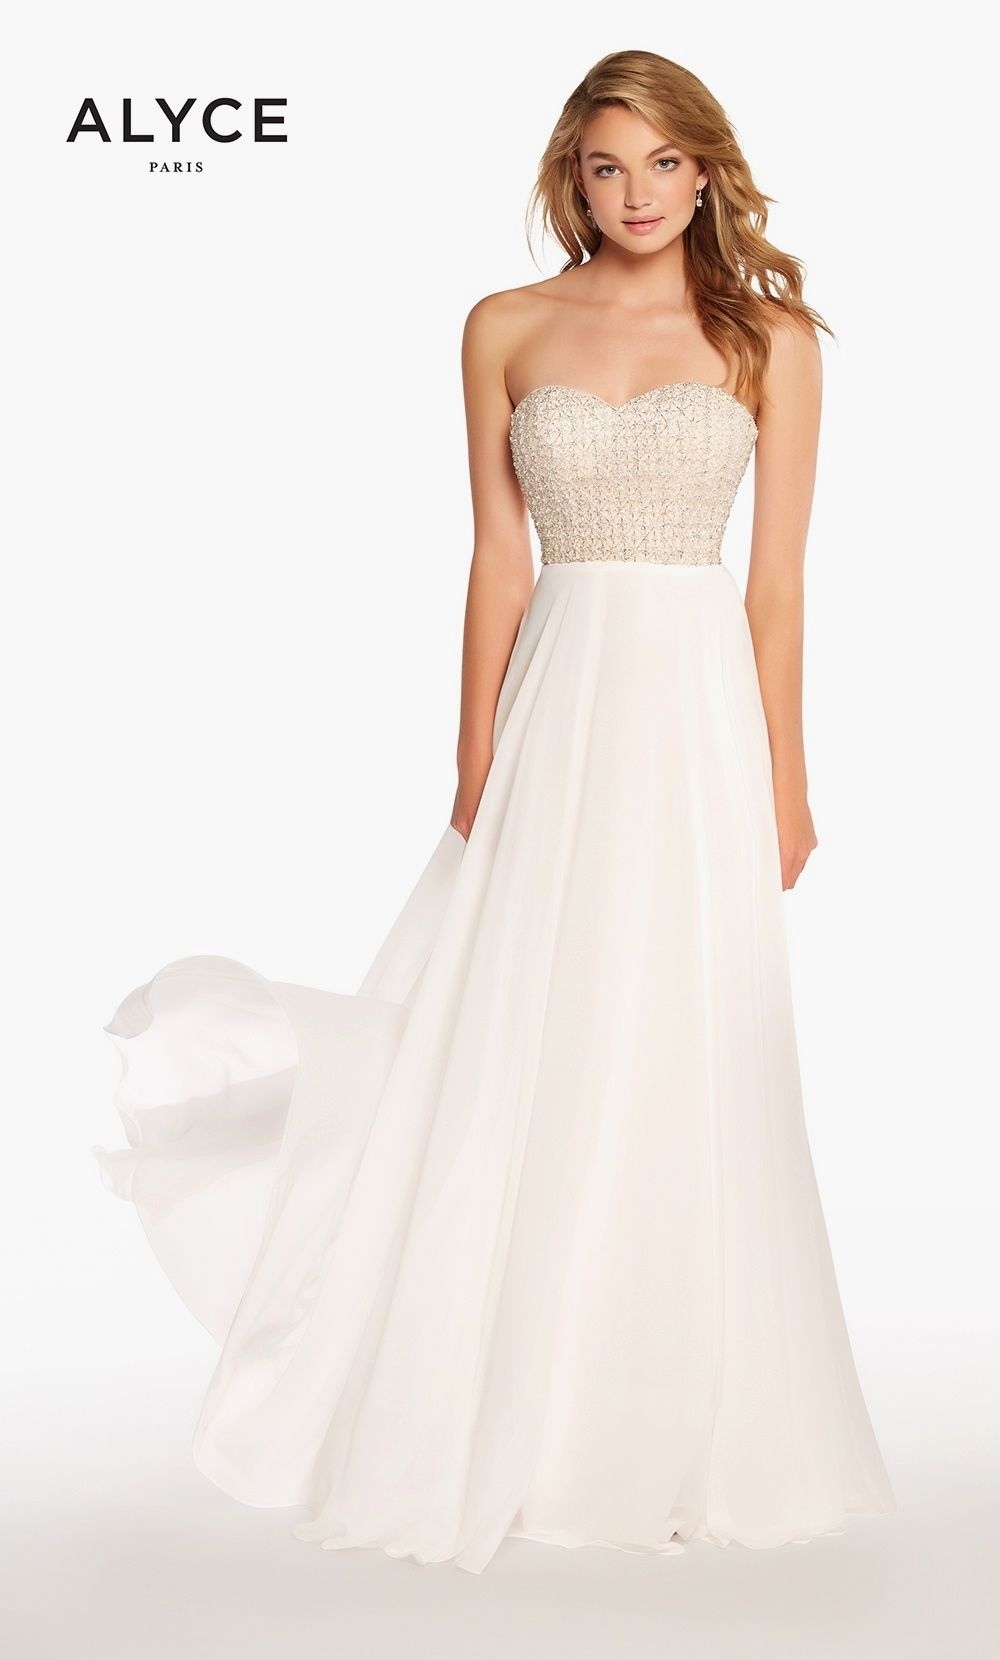 Alyce white prom dress designer prom dresses pinterest